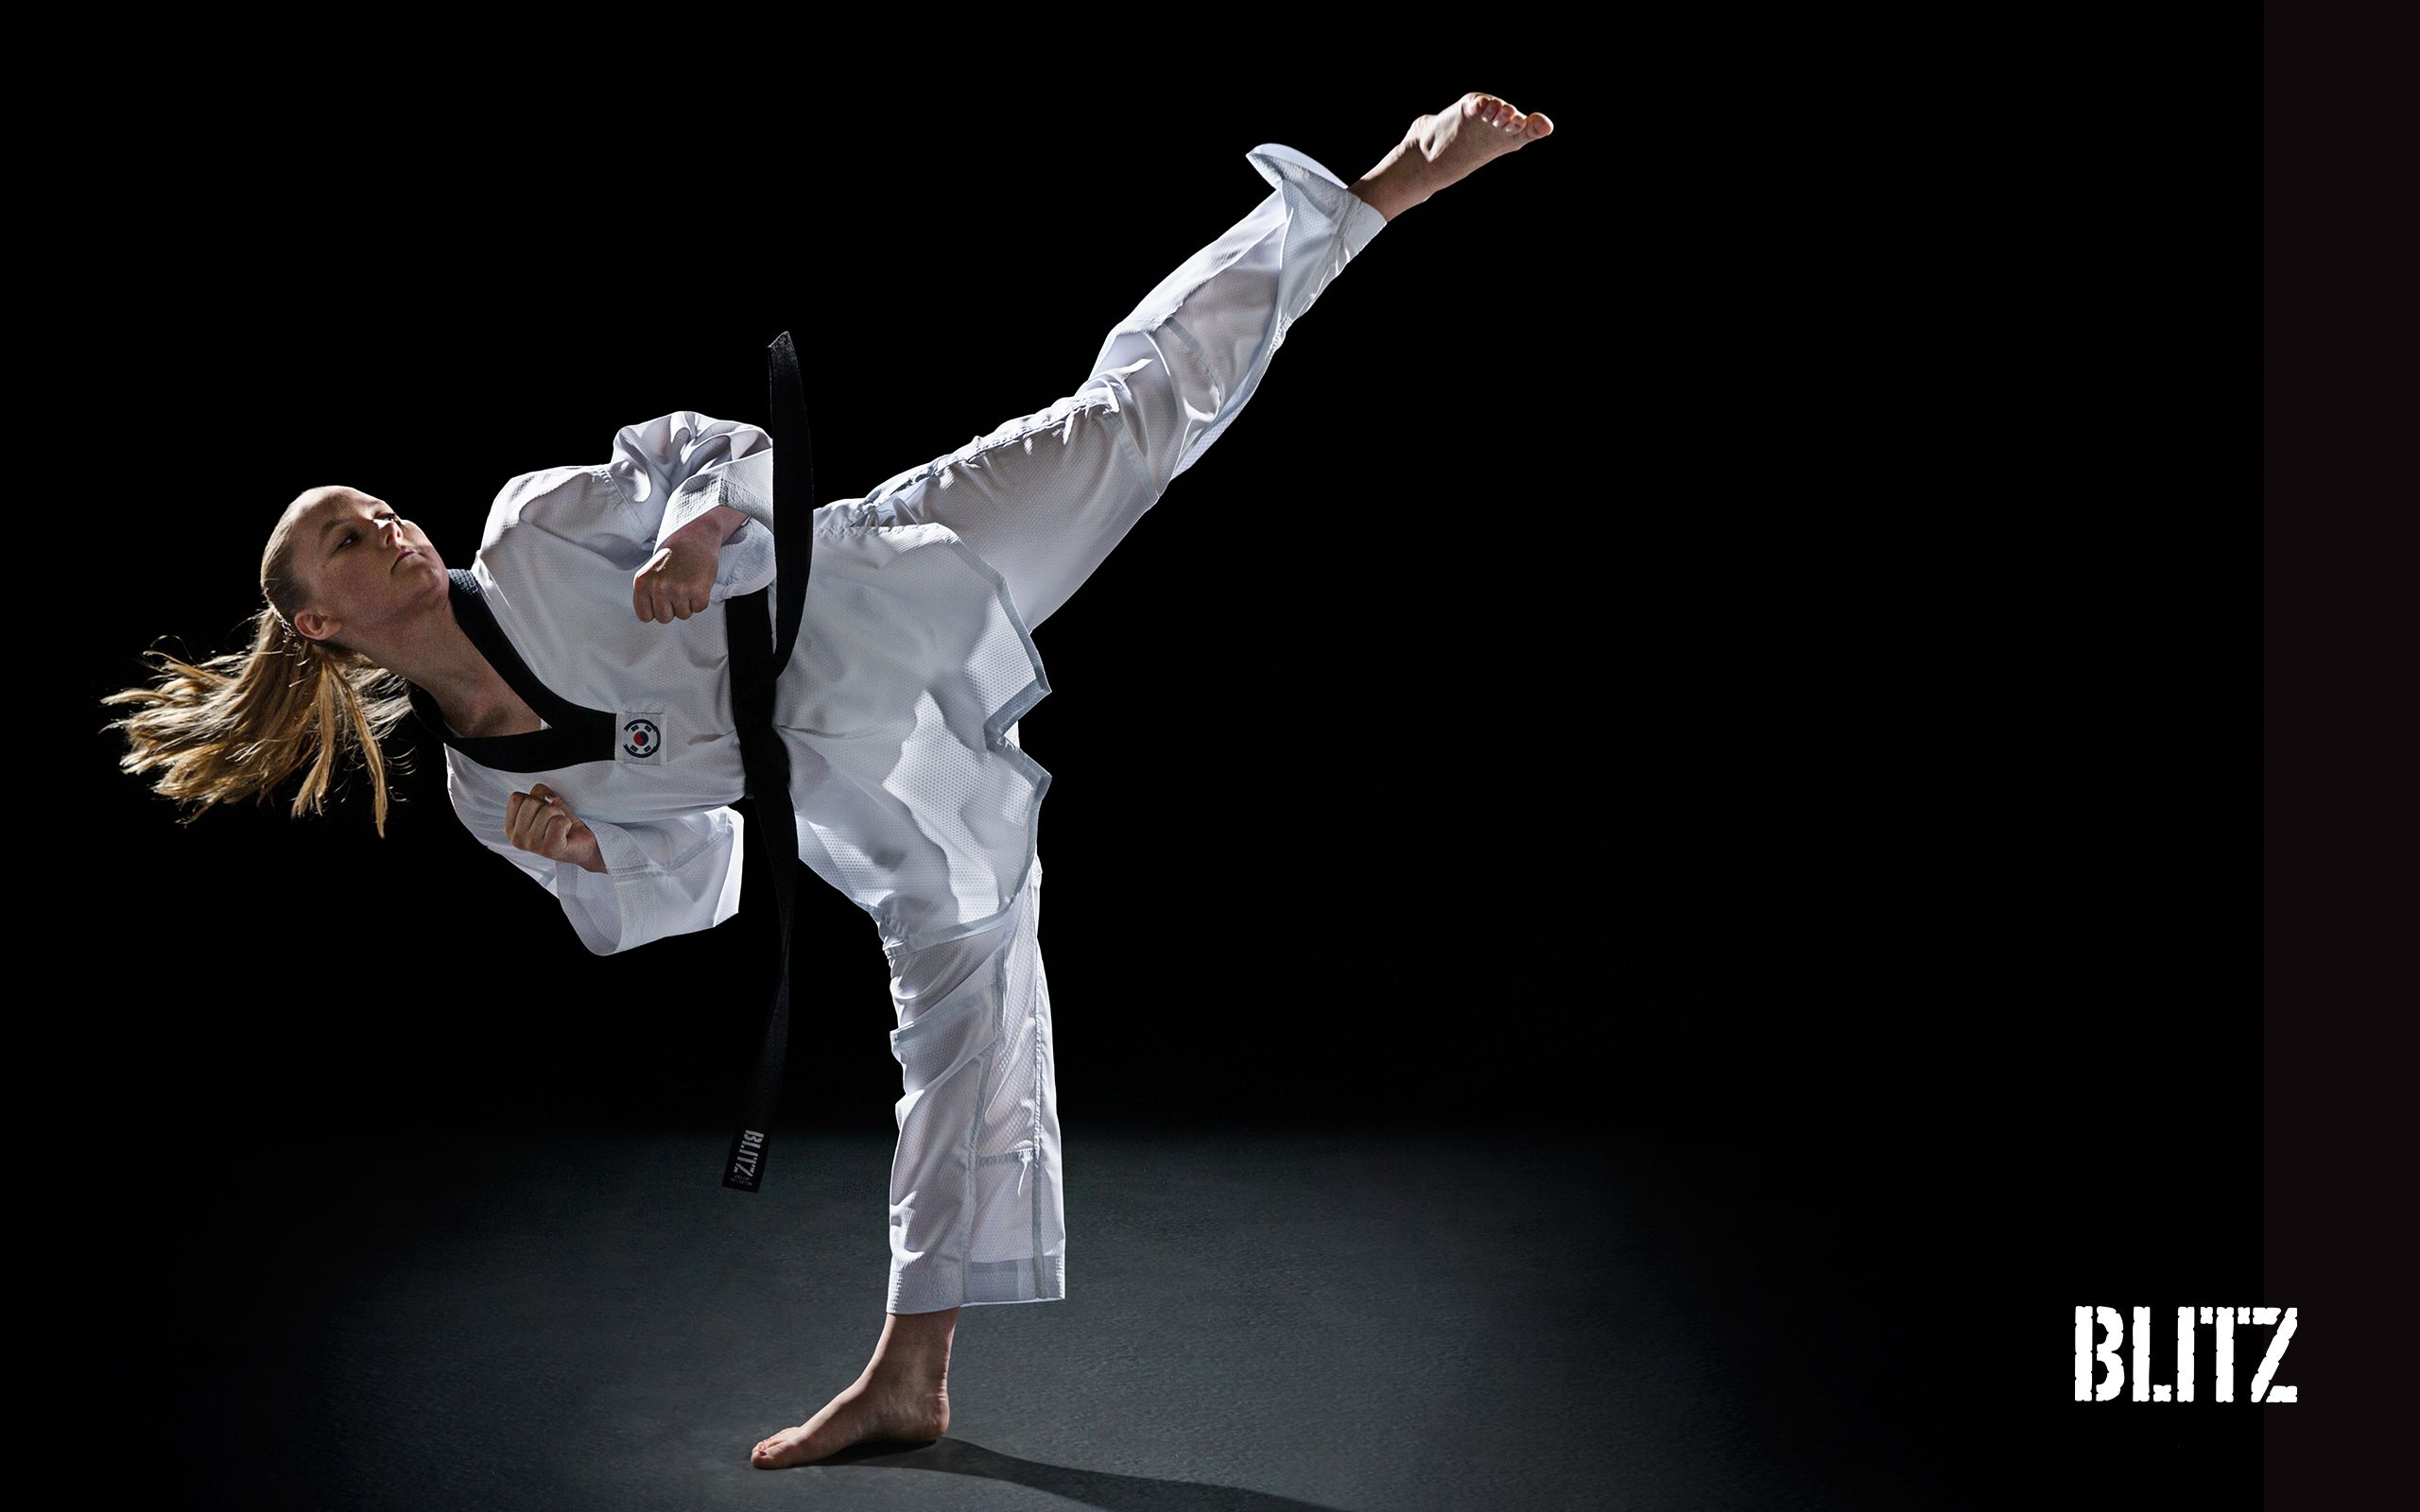 2560x1600 Download the latest Martial Arts wallpapers from Blitz